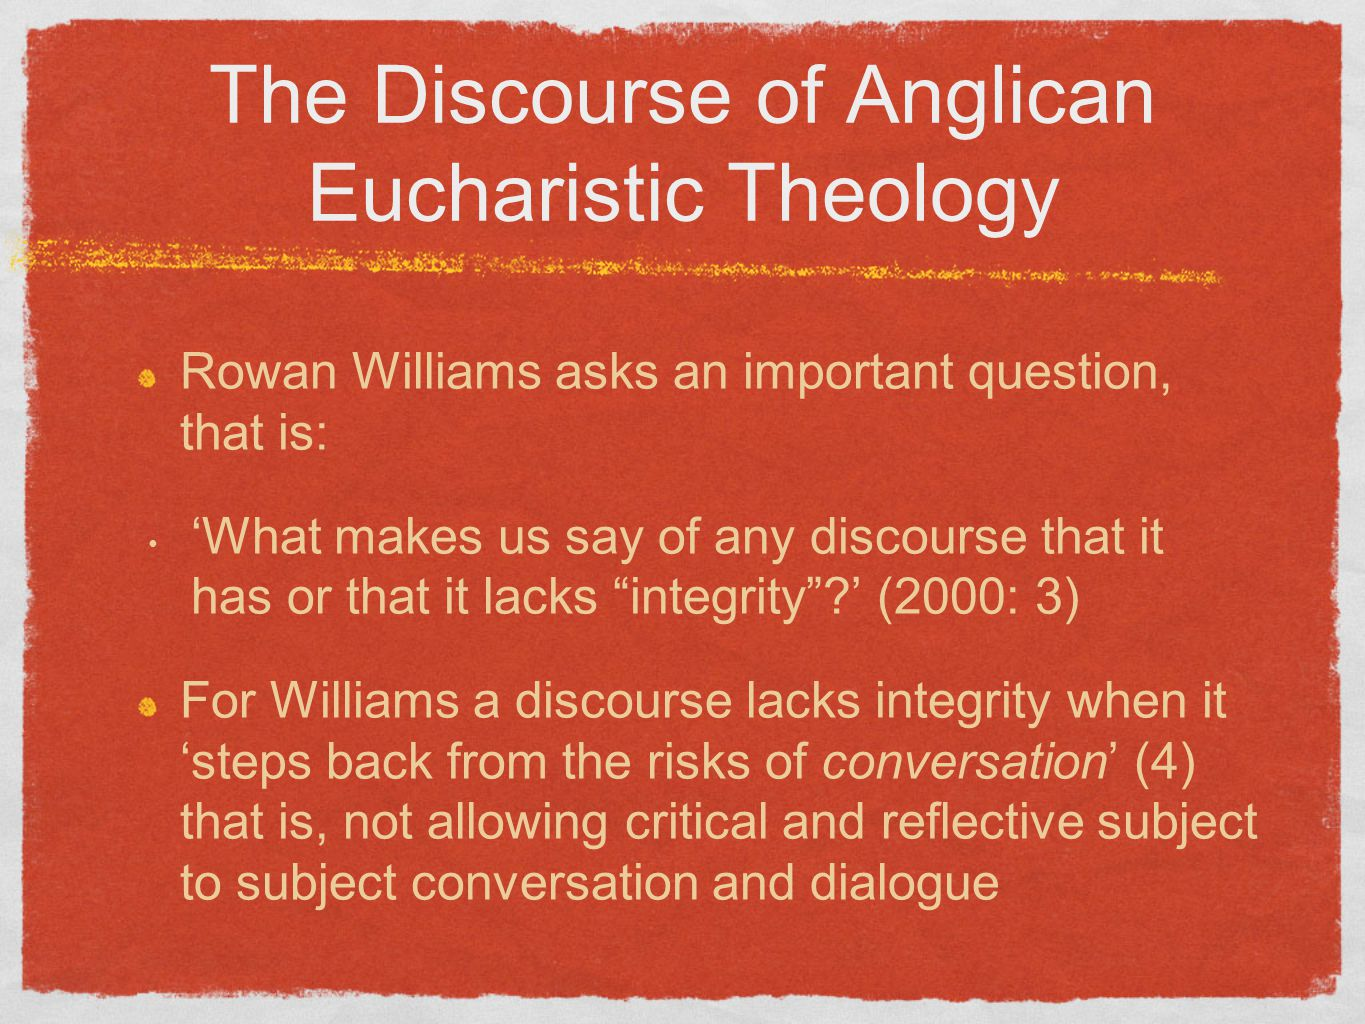 The Discourse of Anglican Eucharistic Theology Rowan Williams asks an important question, that is: 'What makes us say of any discourse that it has or that it lacks integrity ' (2000: 3) For Williams a discourse lacks integrity when it 'steps back from the risks of conversation' (4) that is, not allowing critical and reflective subject to subject conversation and dialogue